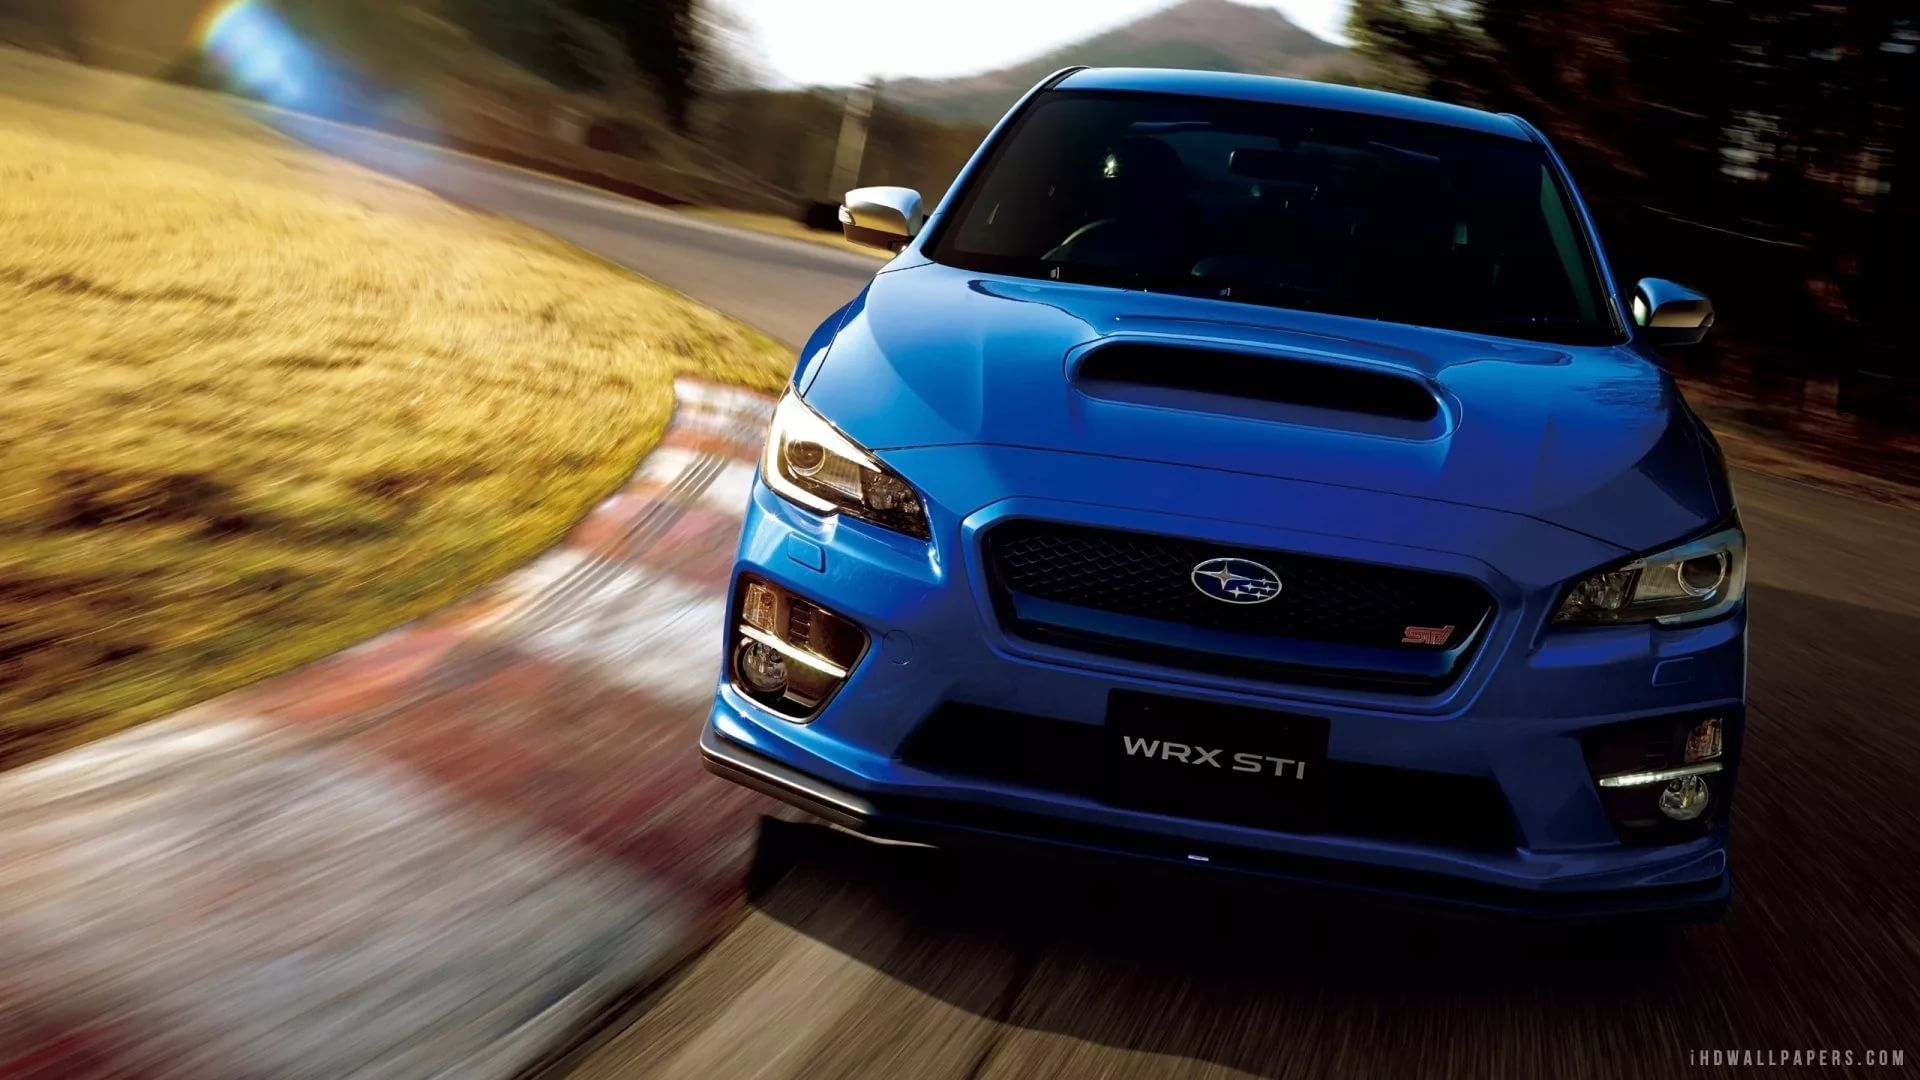 Subaru WRX full hd wallpaper for laptop